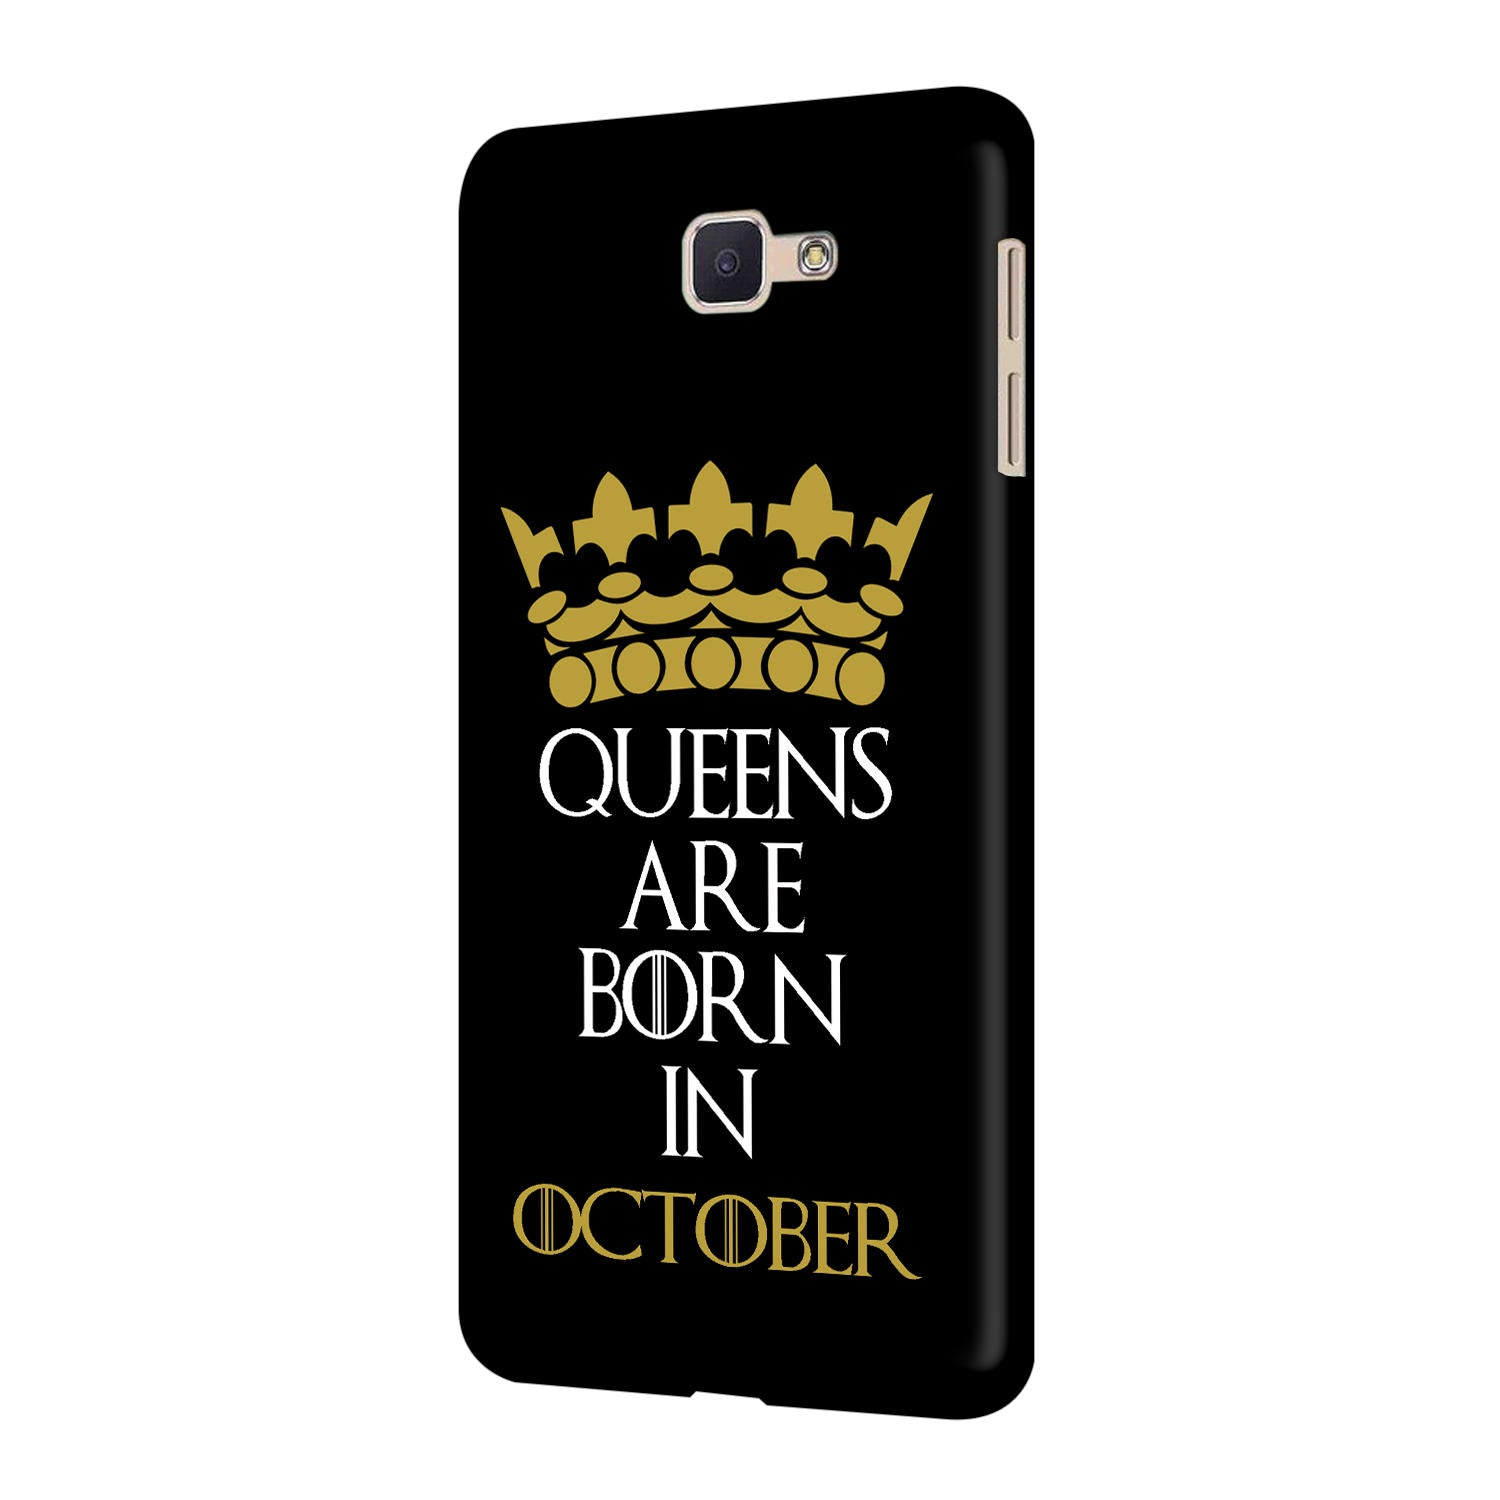 Queens October Samsung Galaxy J7 Prime Mobile Cover Case - MADANYU